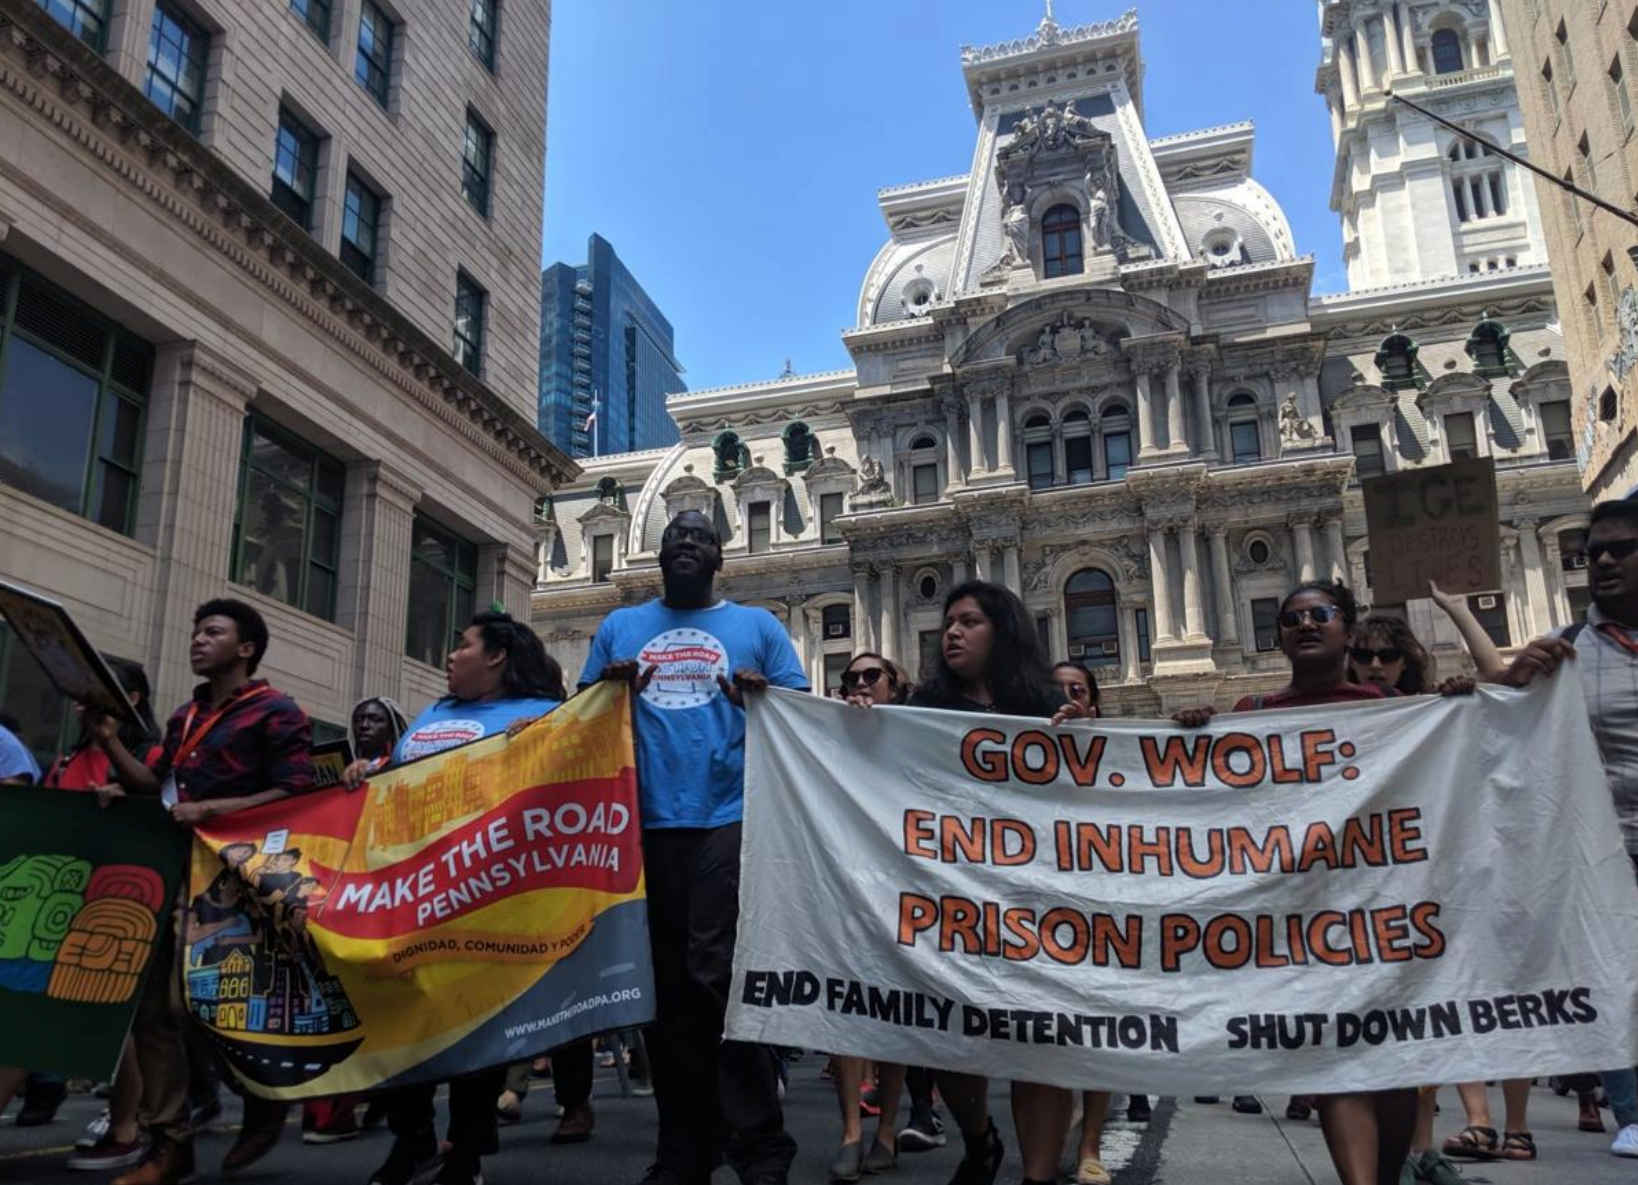 Protesters march outside City Hall on Friday. — PHILADELPHIA TRIBUNE PHOTOs/MICHAEL D'ONOFRIO